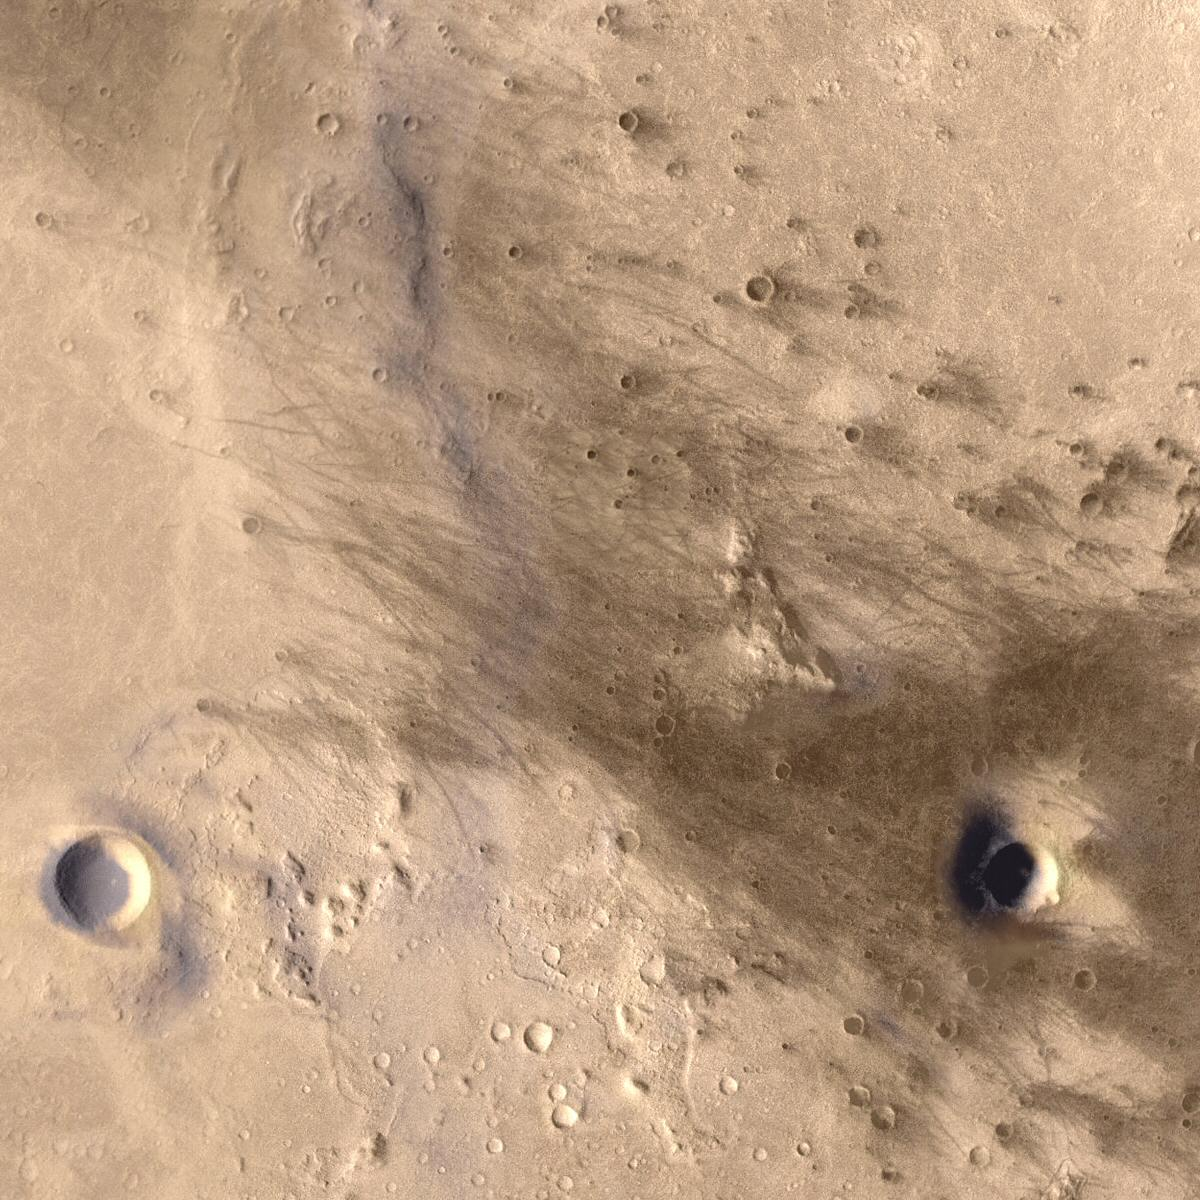 Space 4 Case - Mars images 2004